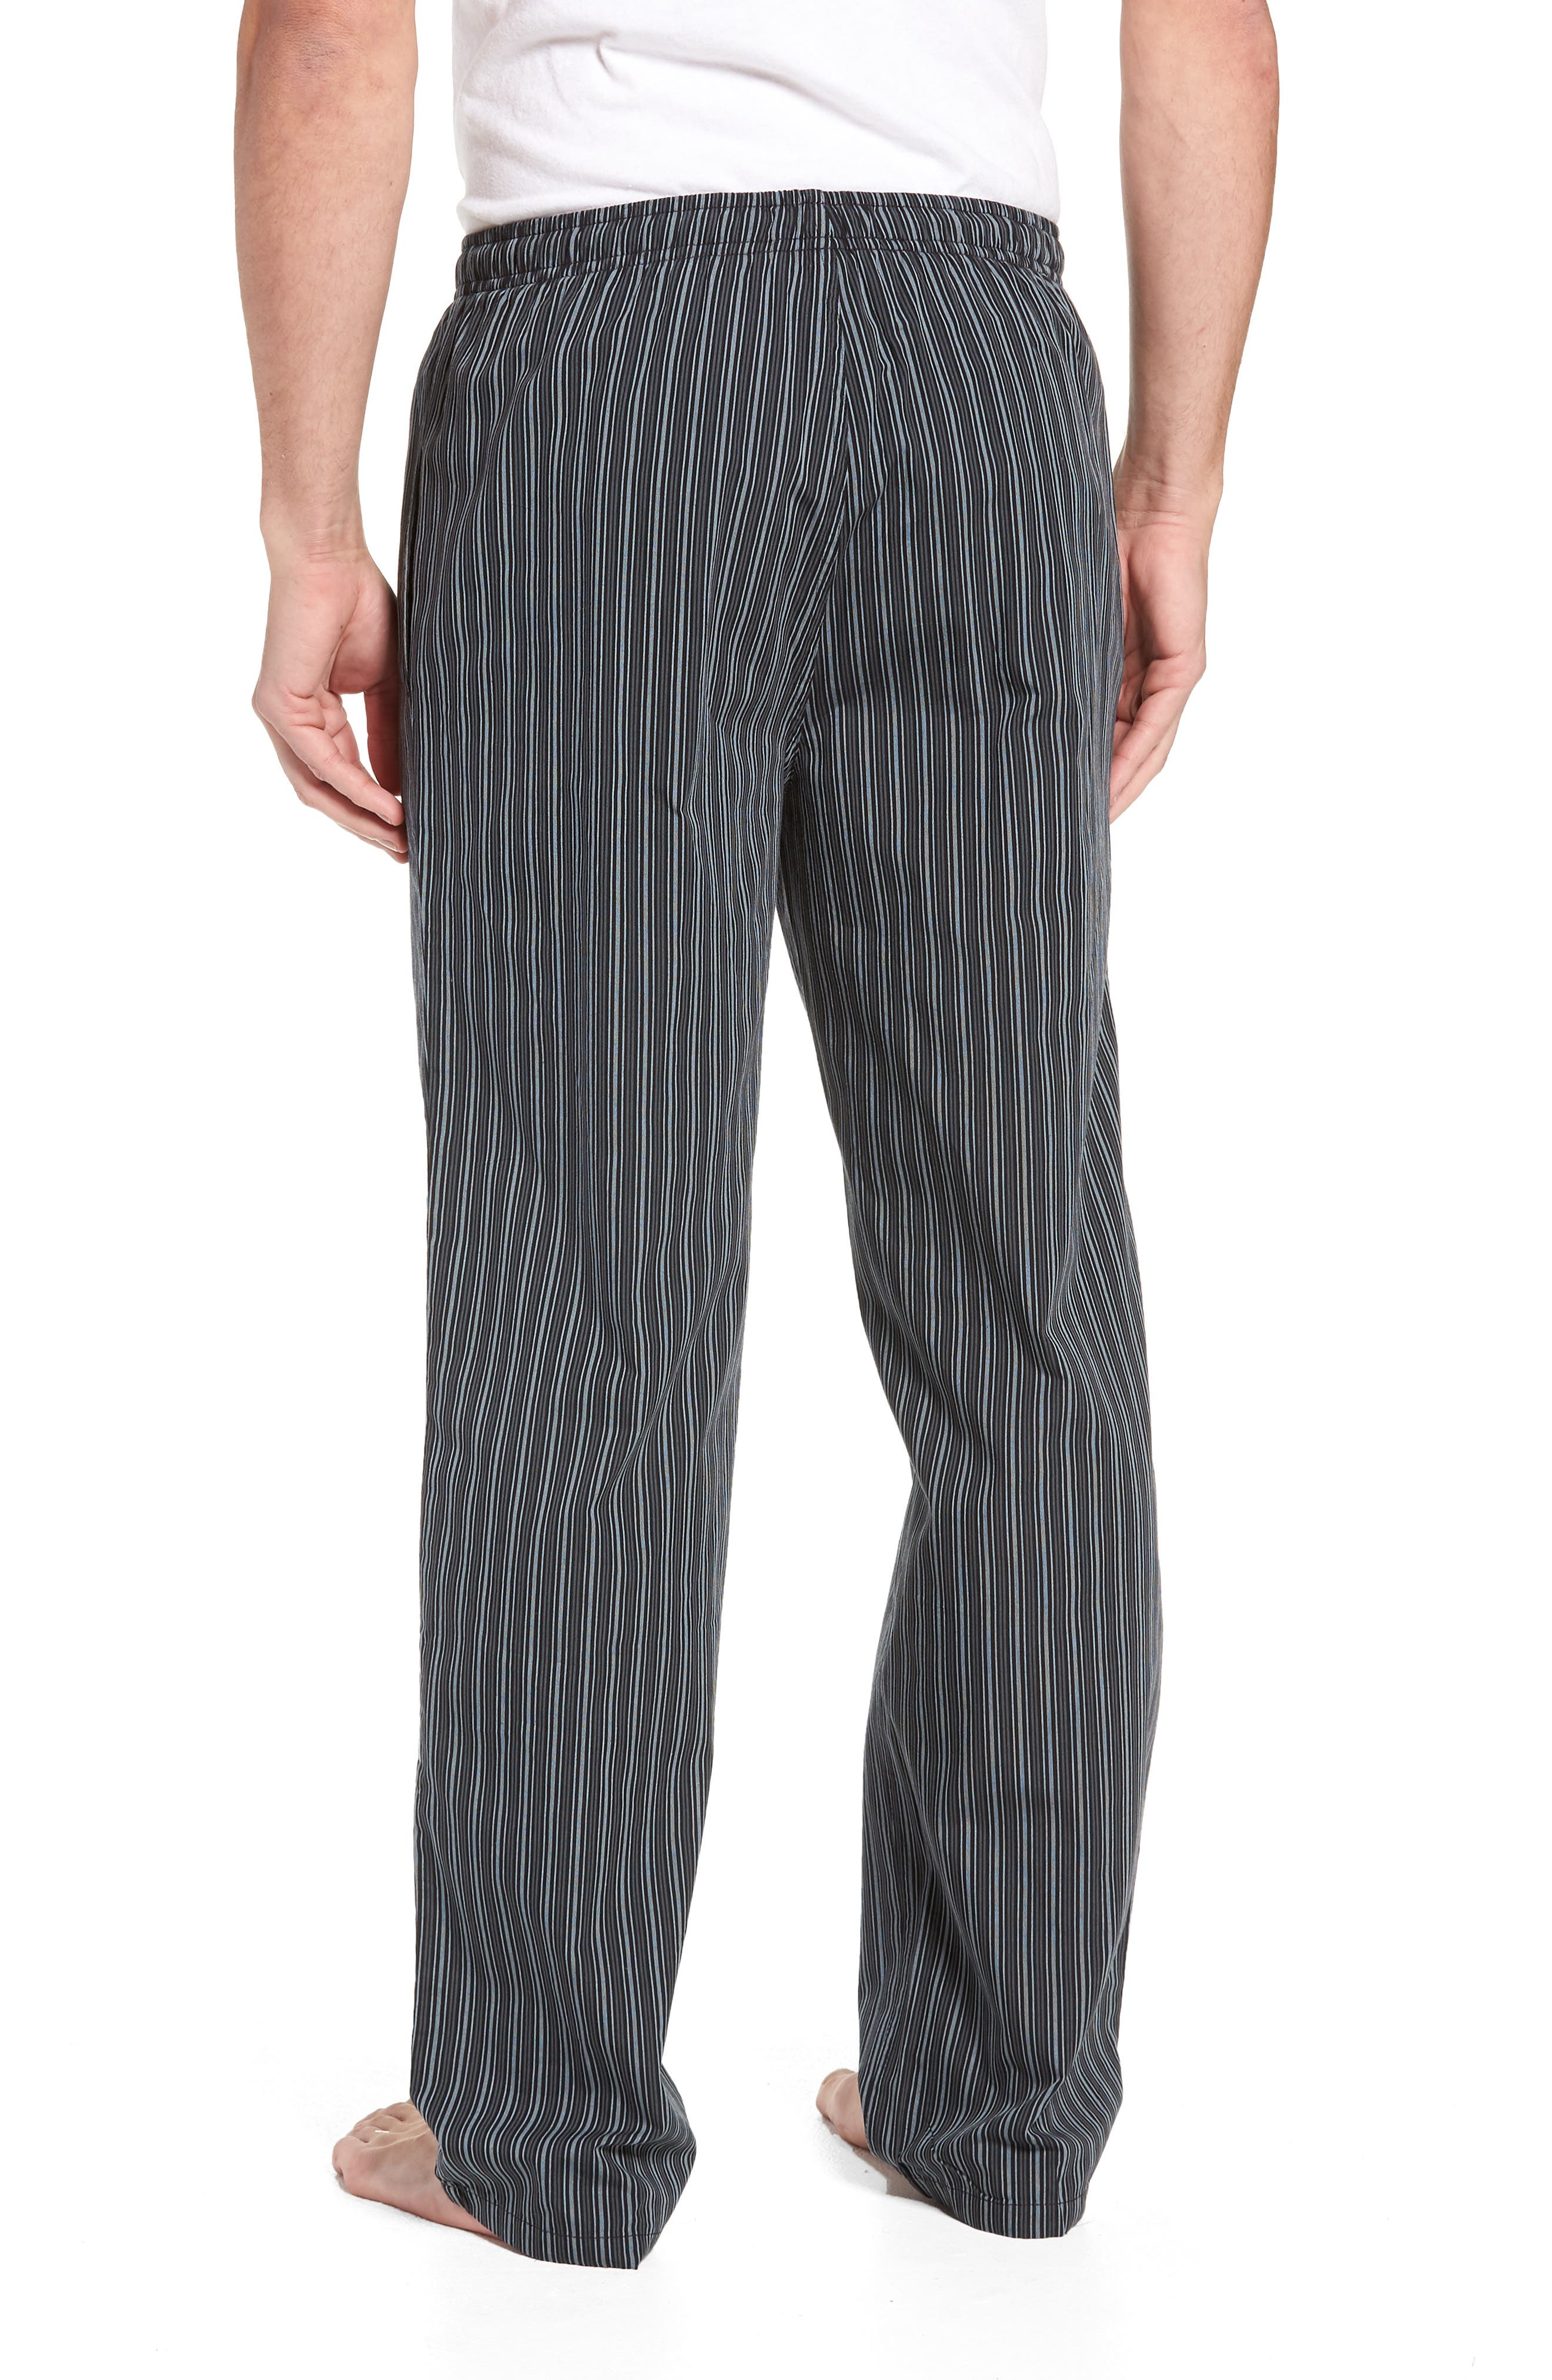 NORDSTROM MEN'S SHOP, Poplin Pajama Pants, Alternate thumbnail 2, color, GREY- BLACK STRIPE